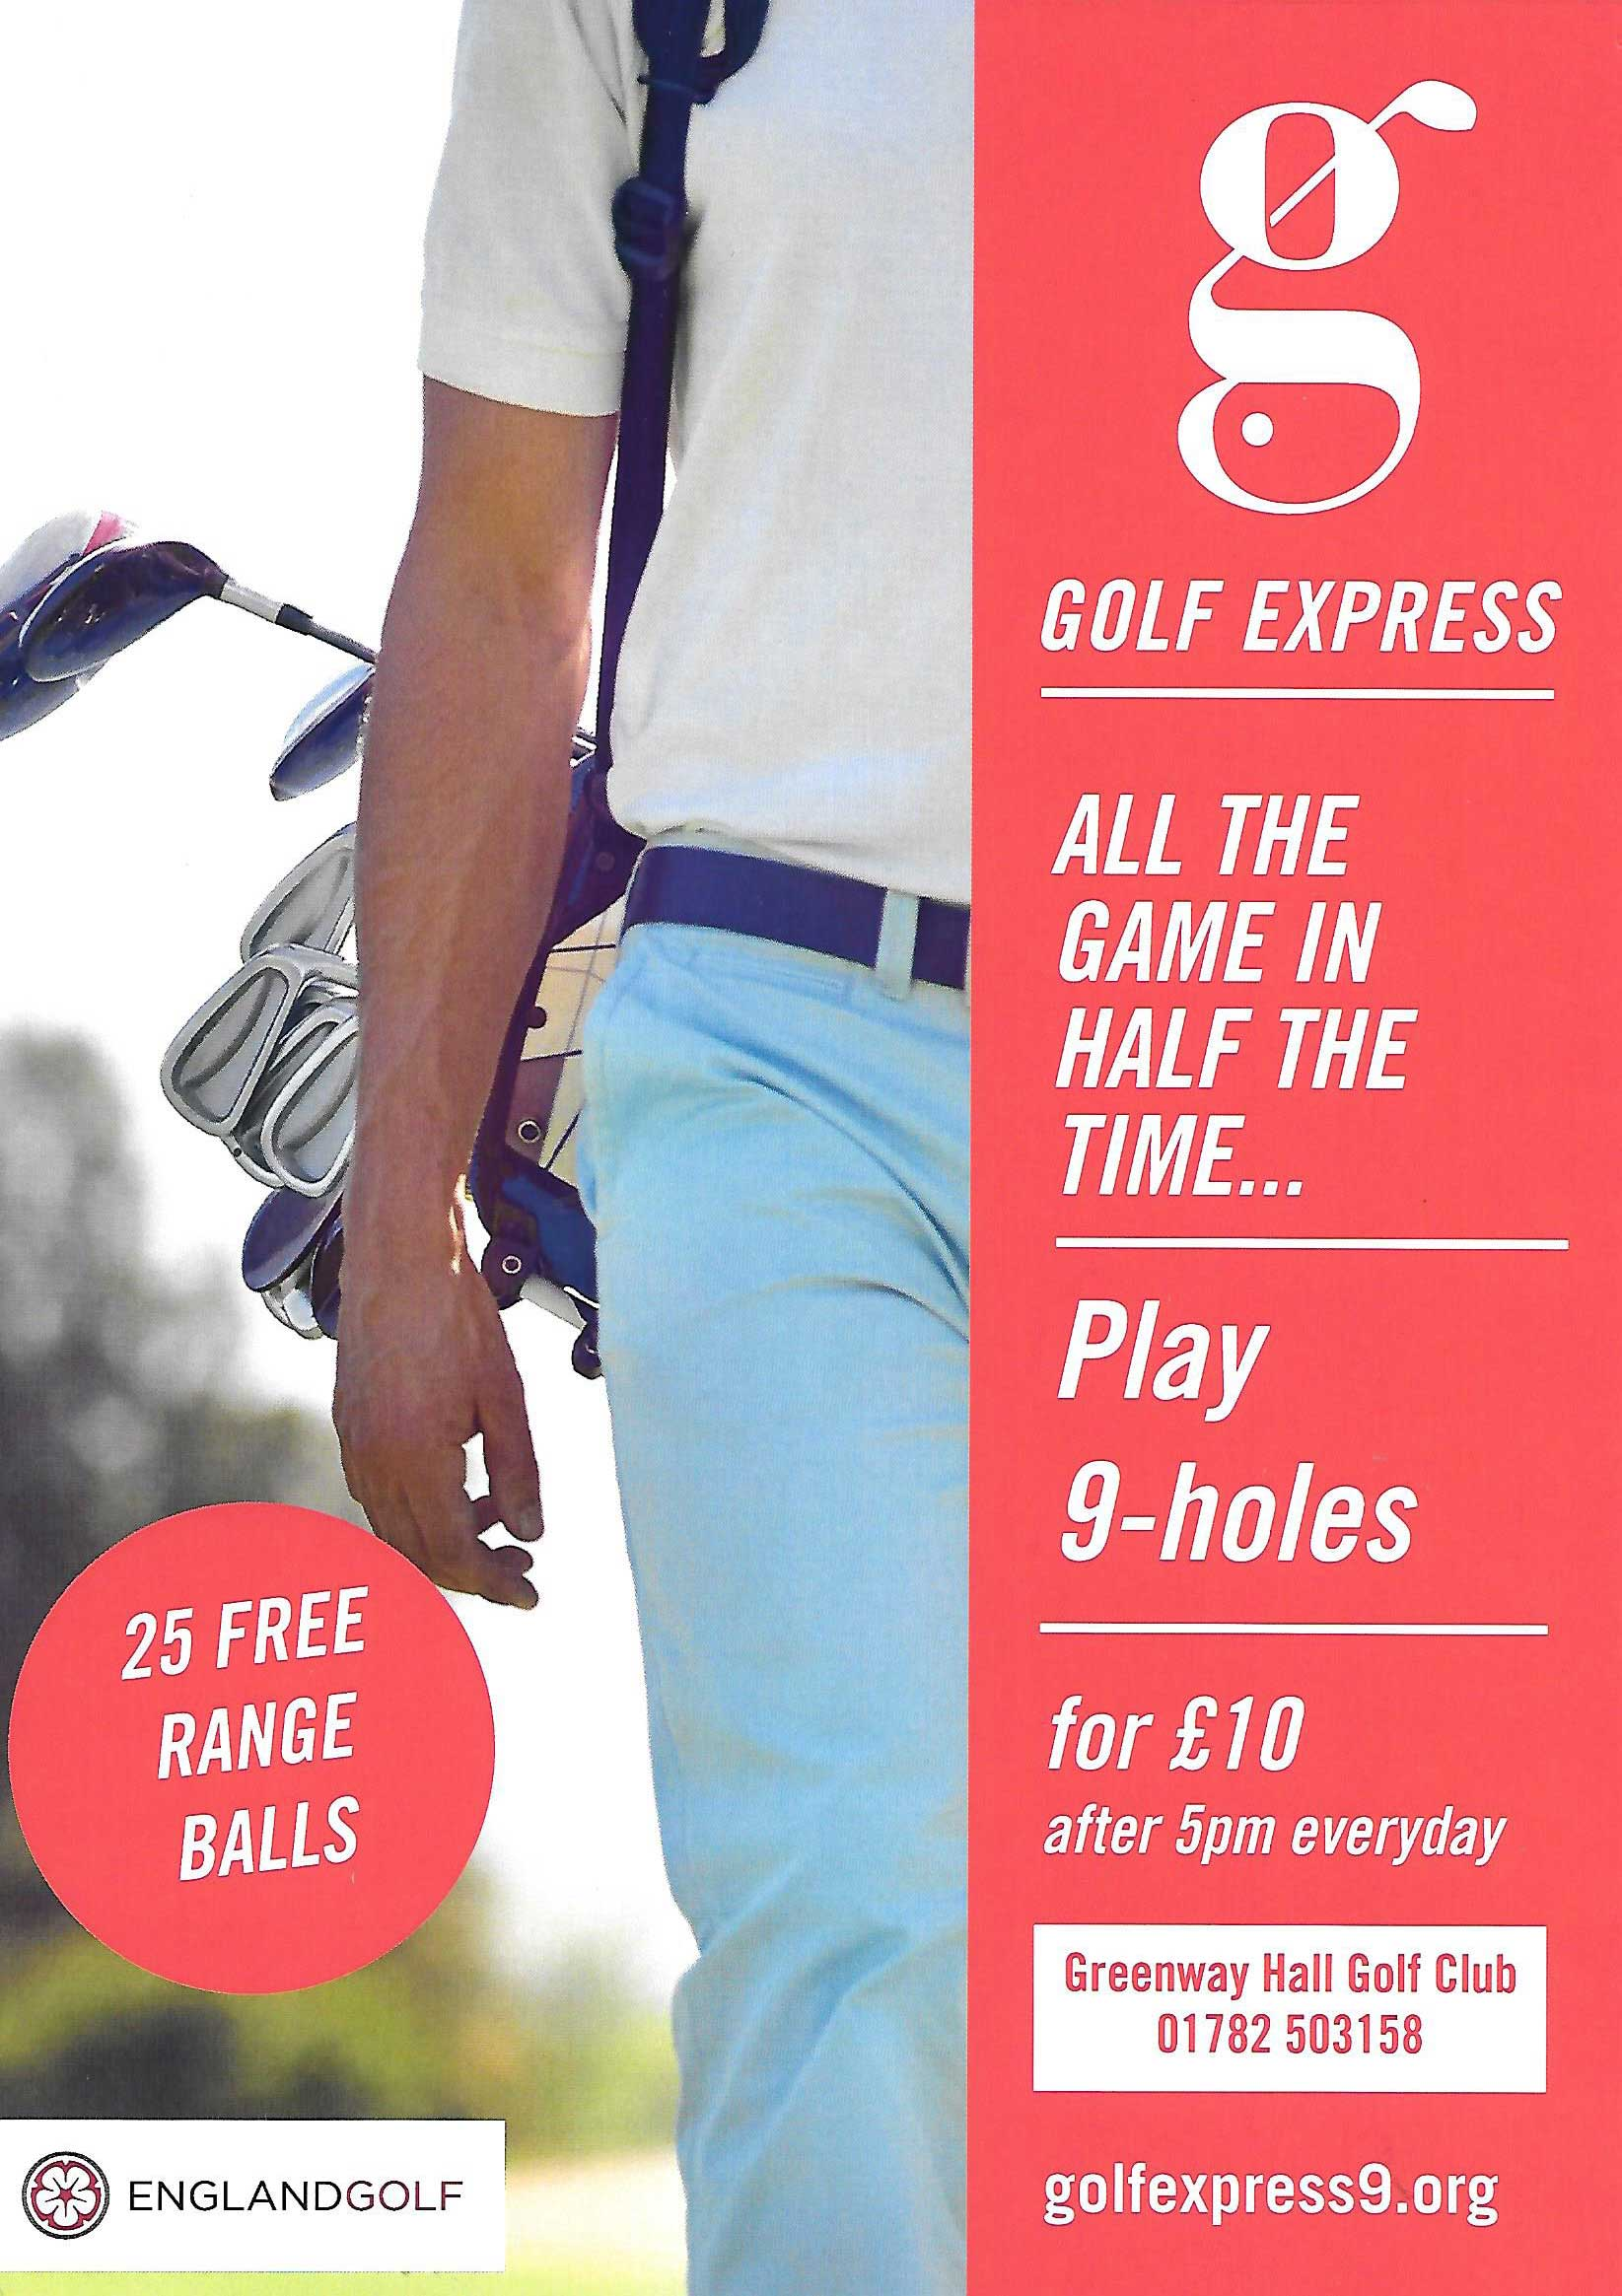 9 Hole Golf Express Offer